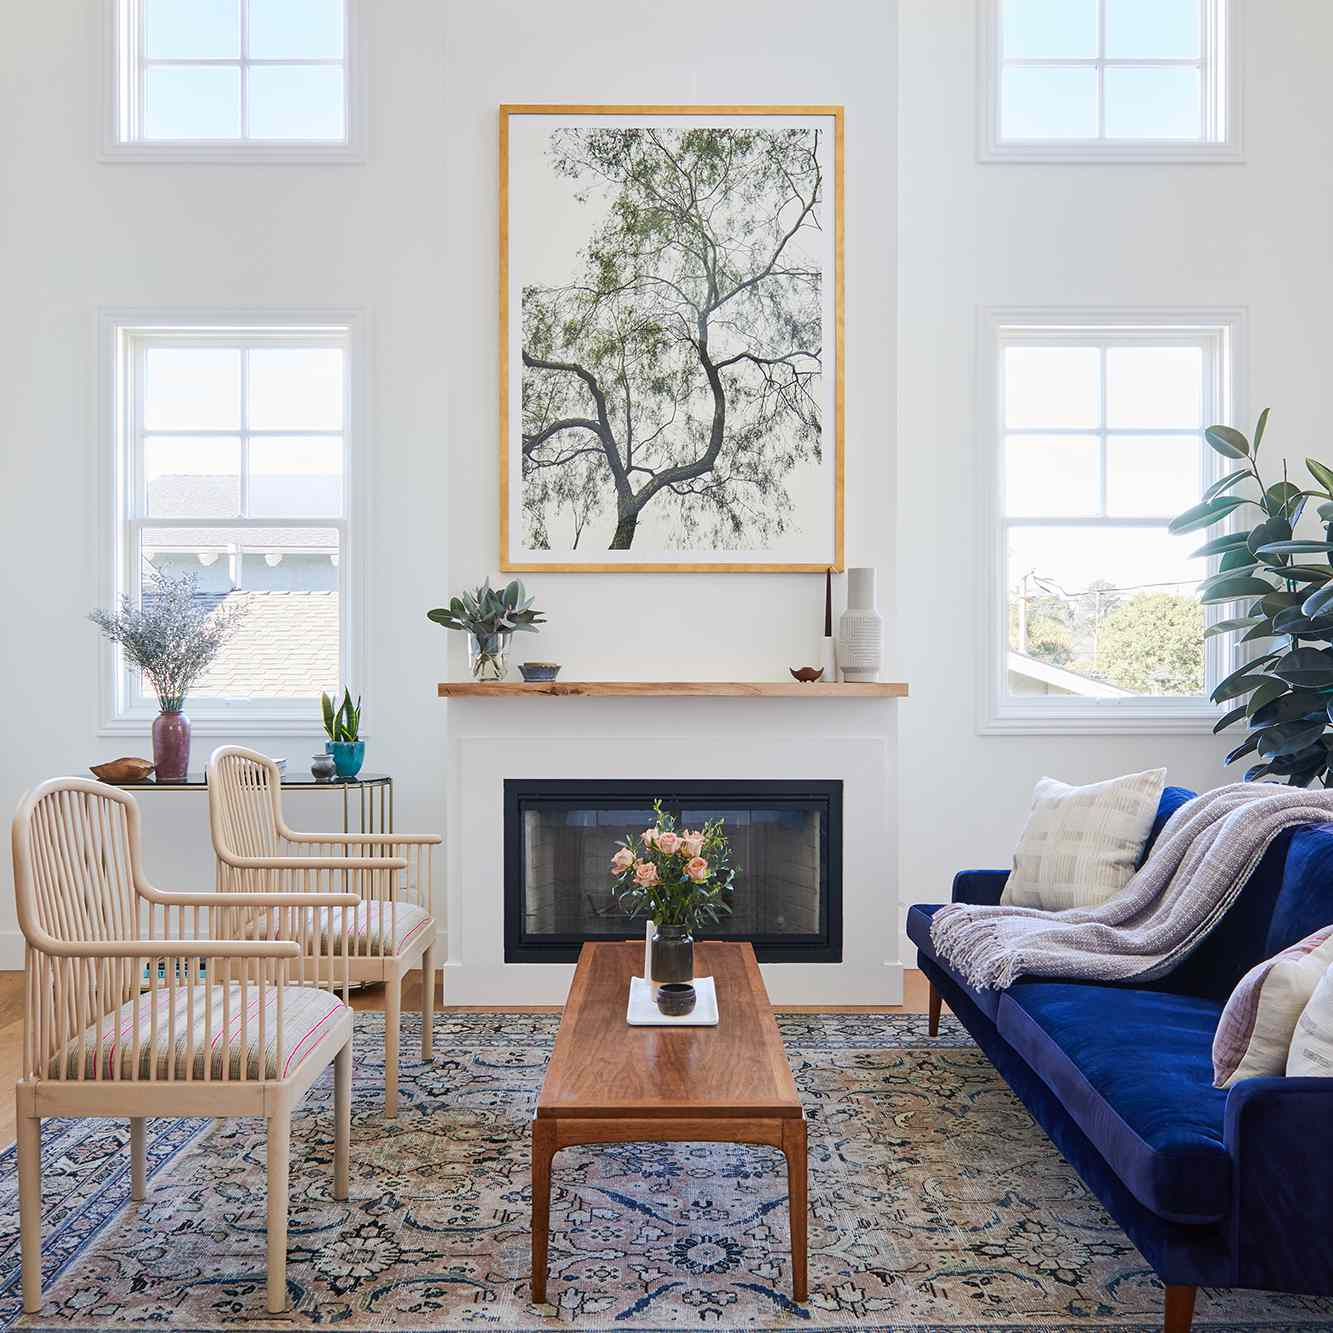 living room with vintage chairs